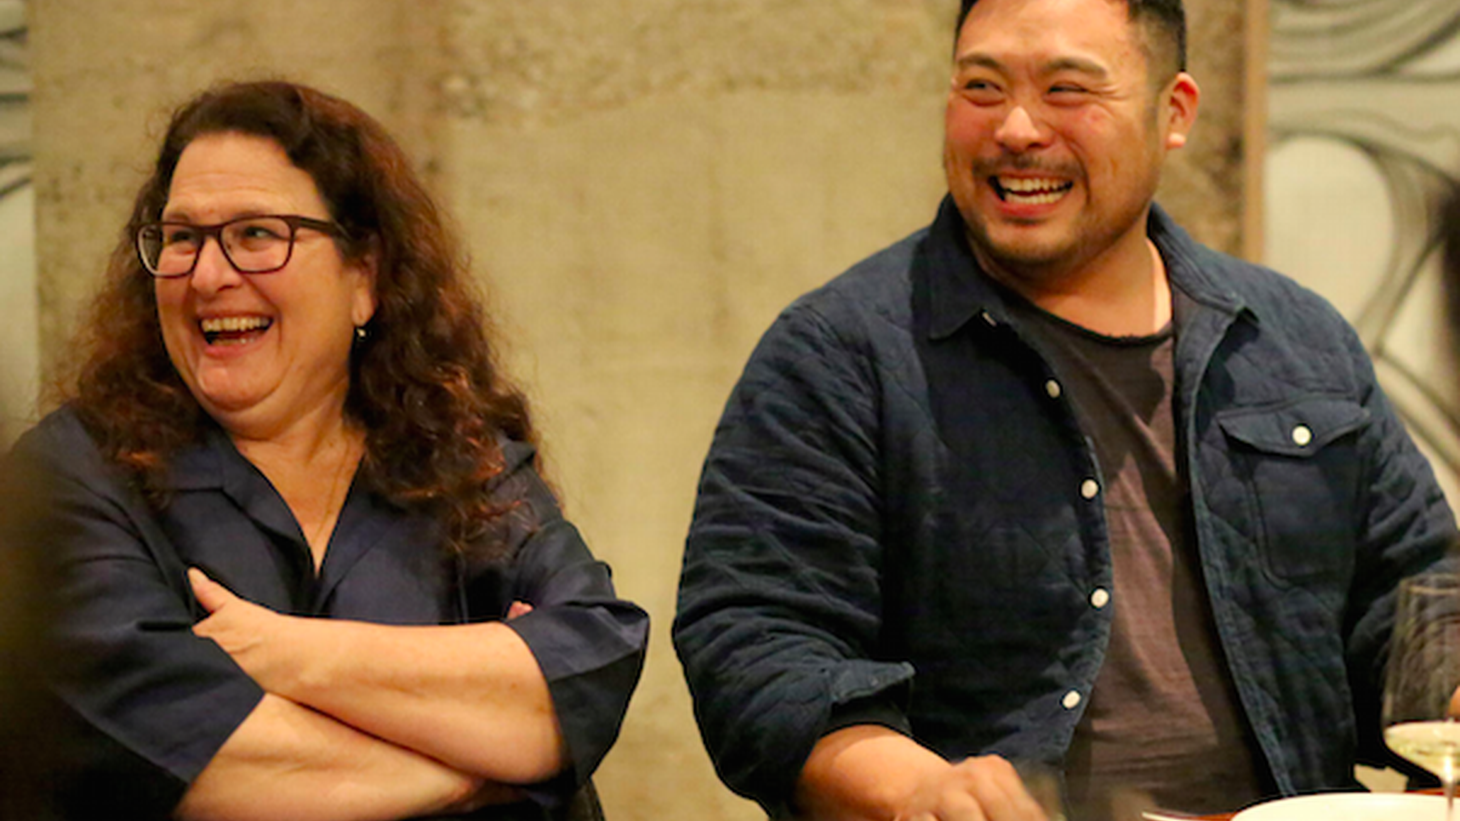 This is the extended version of Evan Kleiman's conversation with David Chang, chef and founder of Momofuku and creator of the hit Netflix show Ugly Delicious.